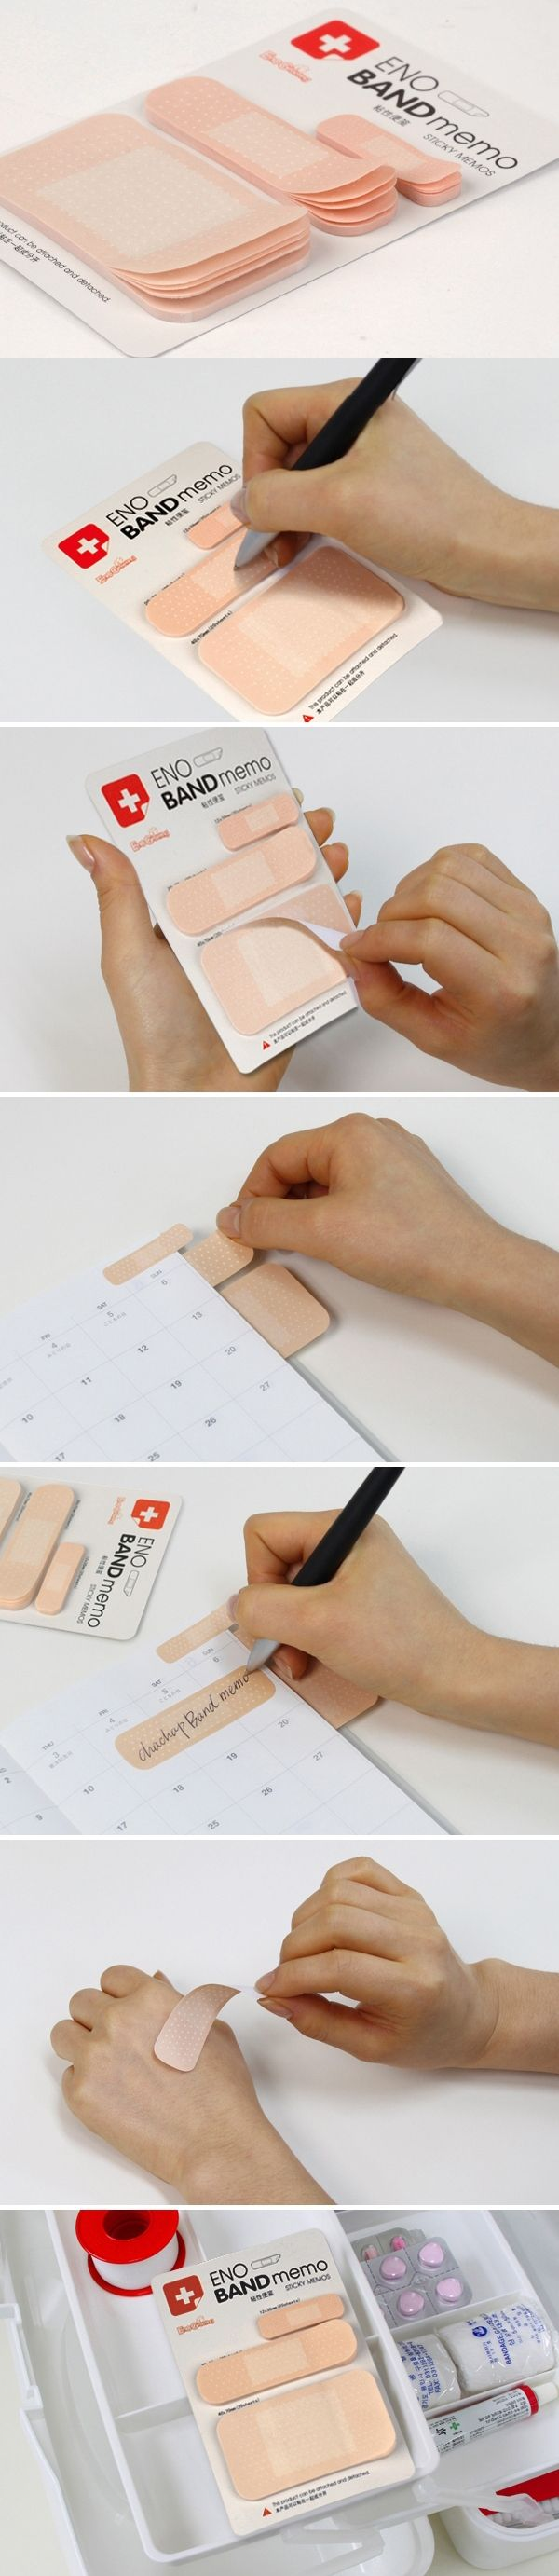 This will look totally normal on your hand compared to a normal post-it note